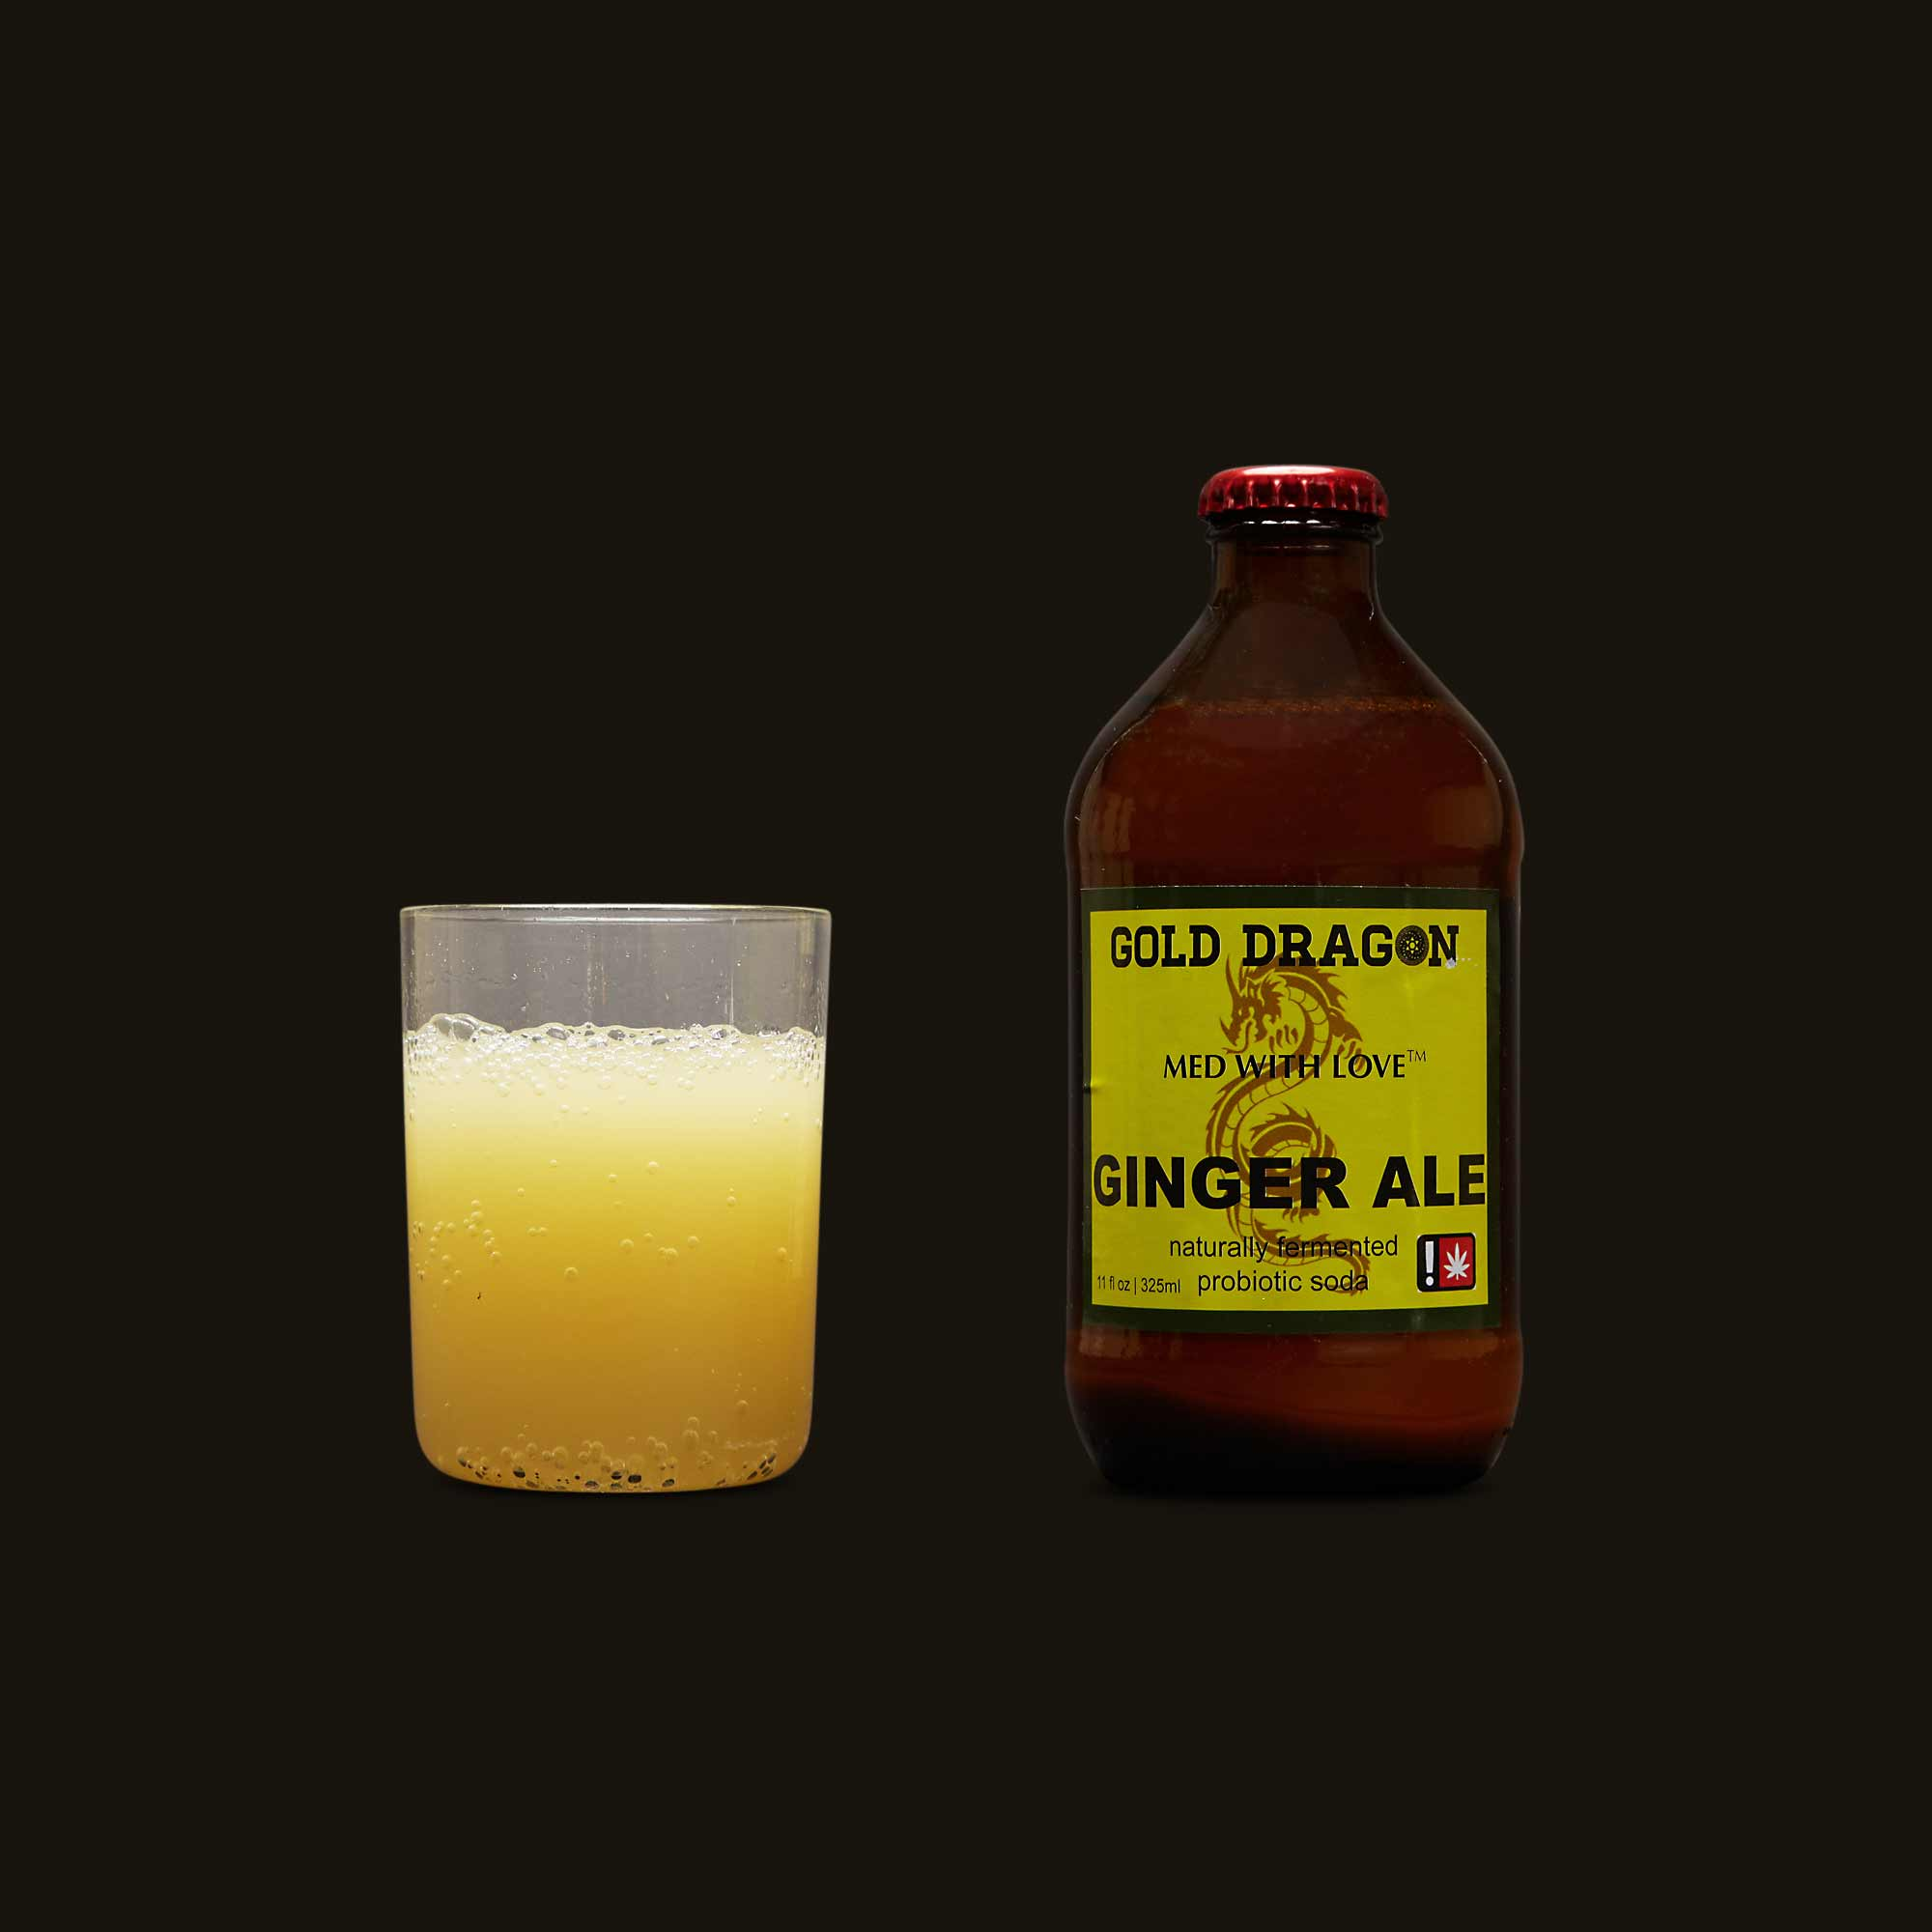 Med with Love Gold Dragon Ginger Ale